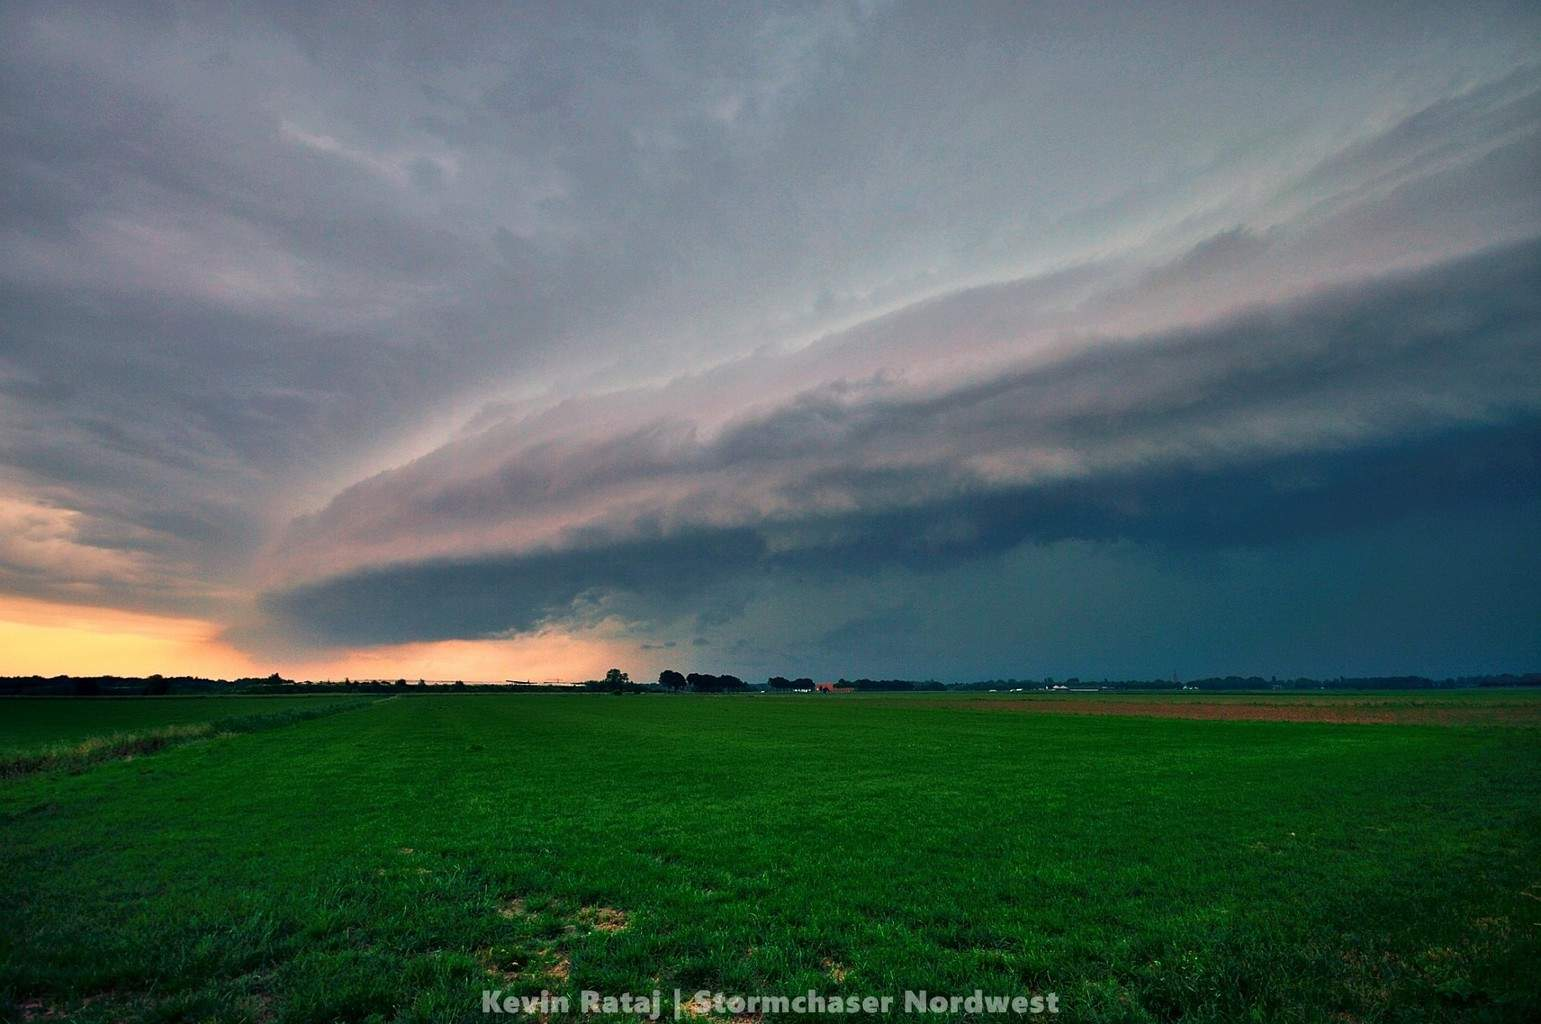 Shelfcloud in the Neatherlands, Eindhoven - 05.06.15